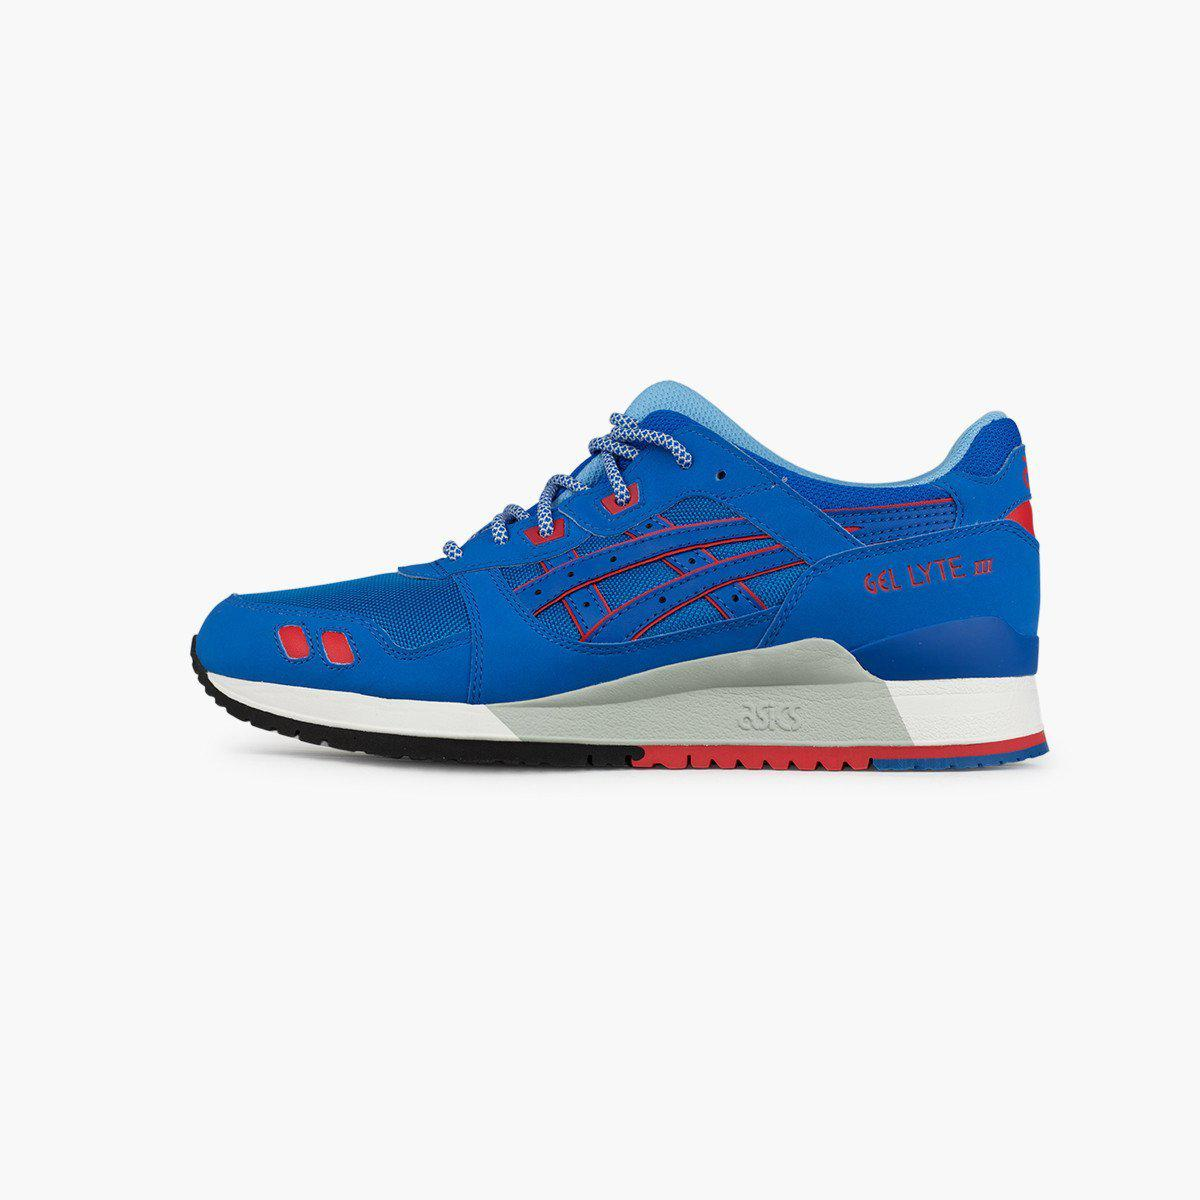 6ca0be98 Gallery. Previously sold at: Suede Store · Men's Asics Gel Lyte Iii ...